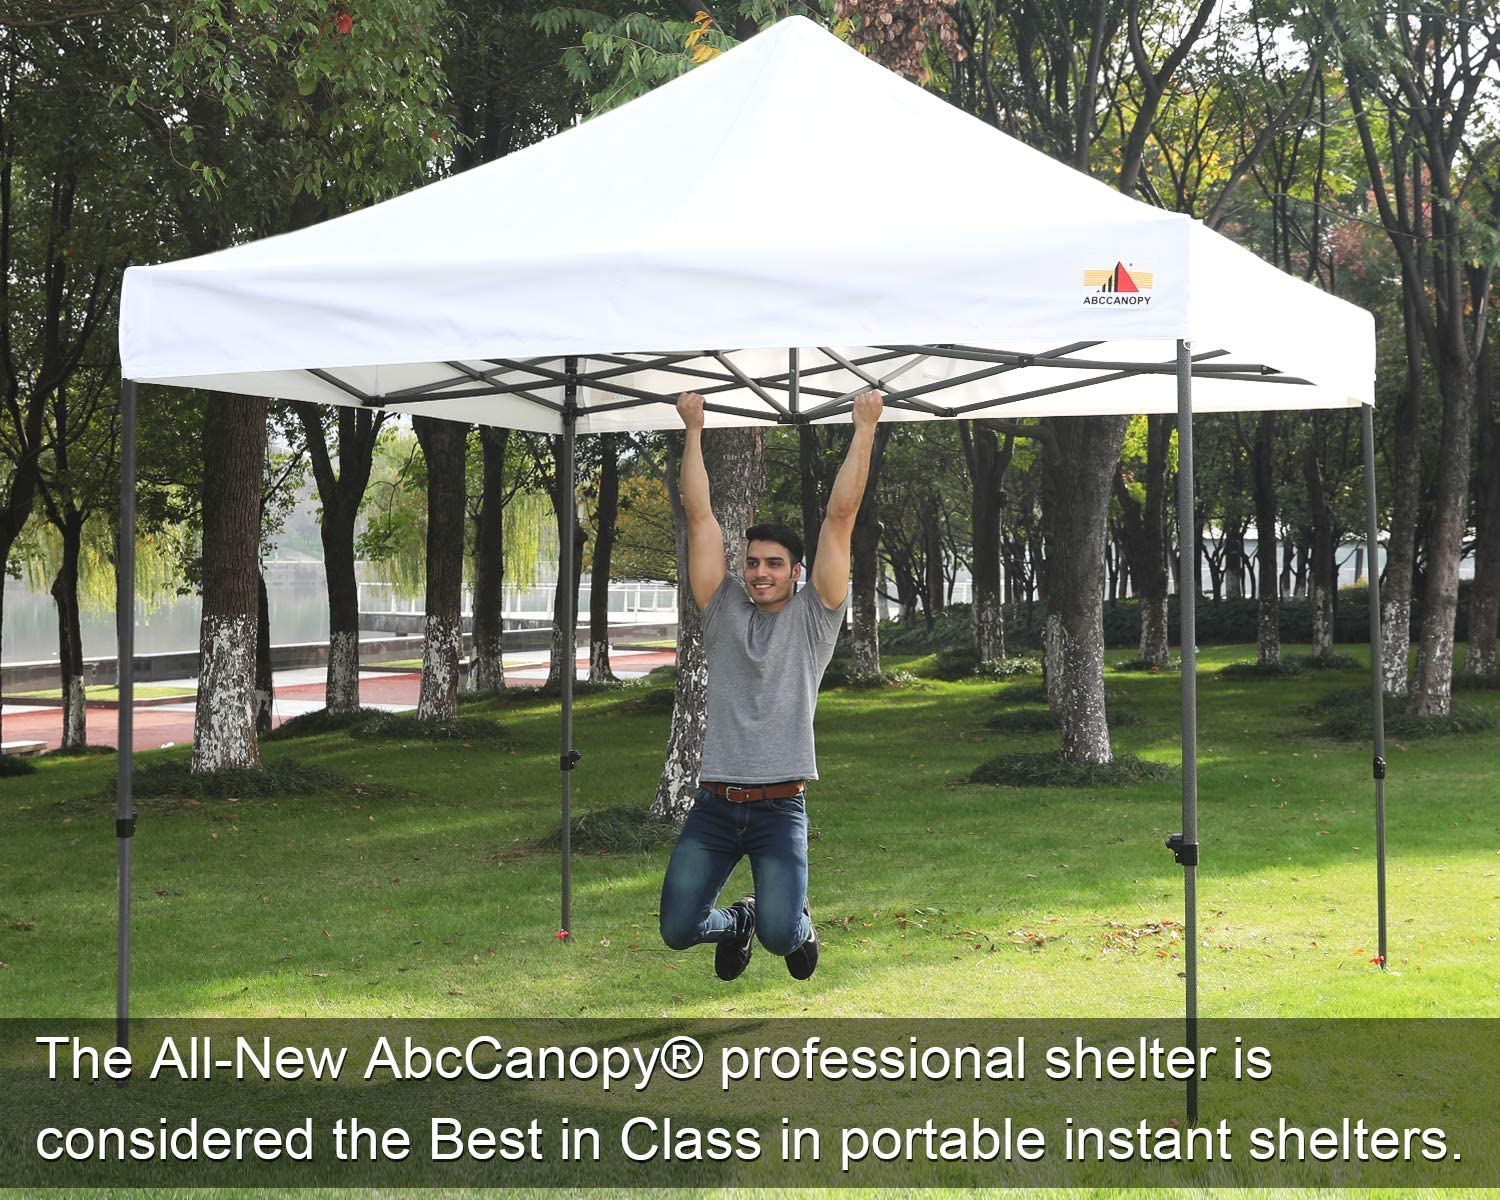 ABCCANOPY Canopy Tent 10 x 10 Pop Up Canopies Commercial Canopies Market Stall Roller Bag Bonus 4 Weight Bags, Strip Red